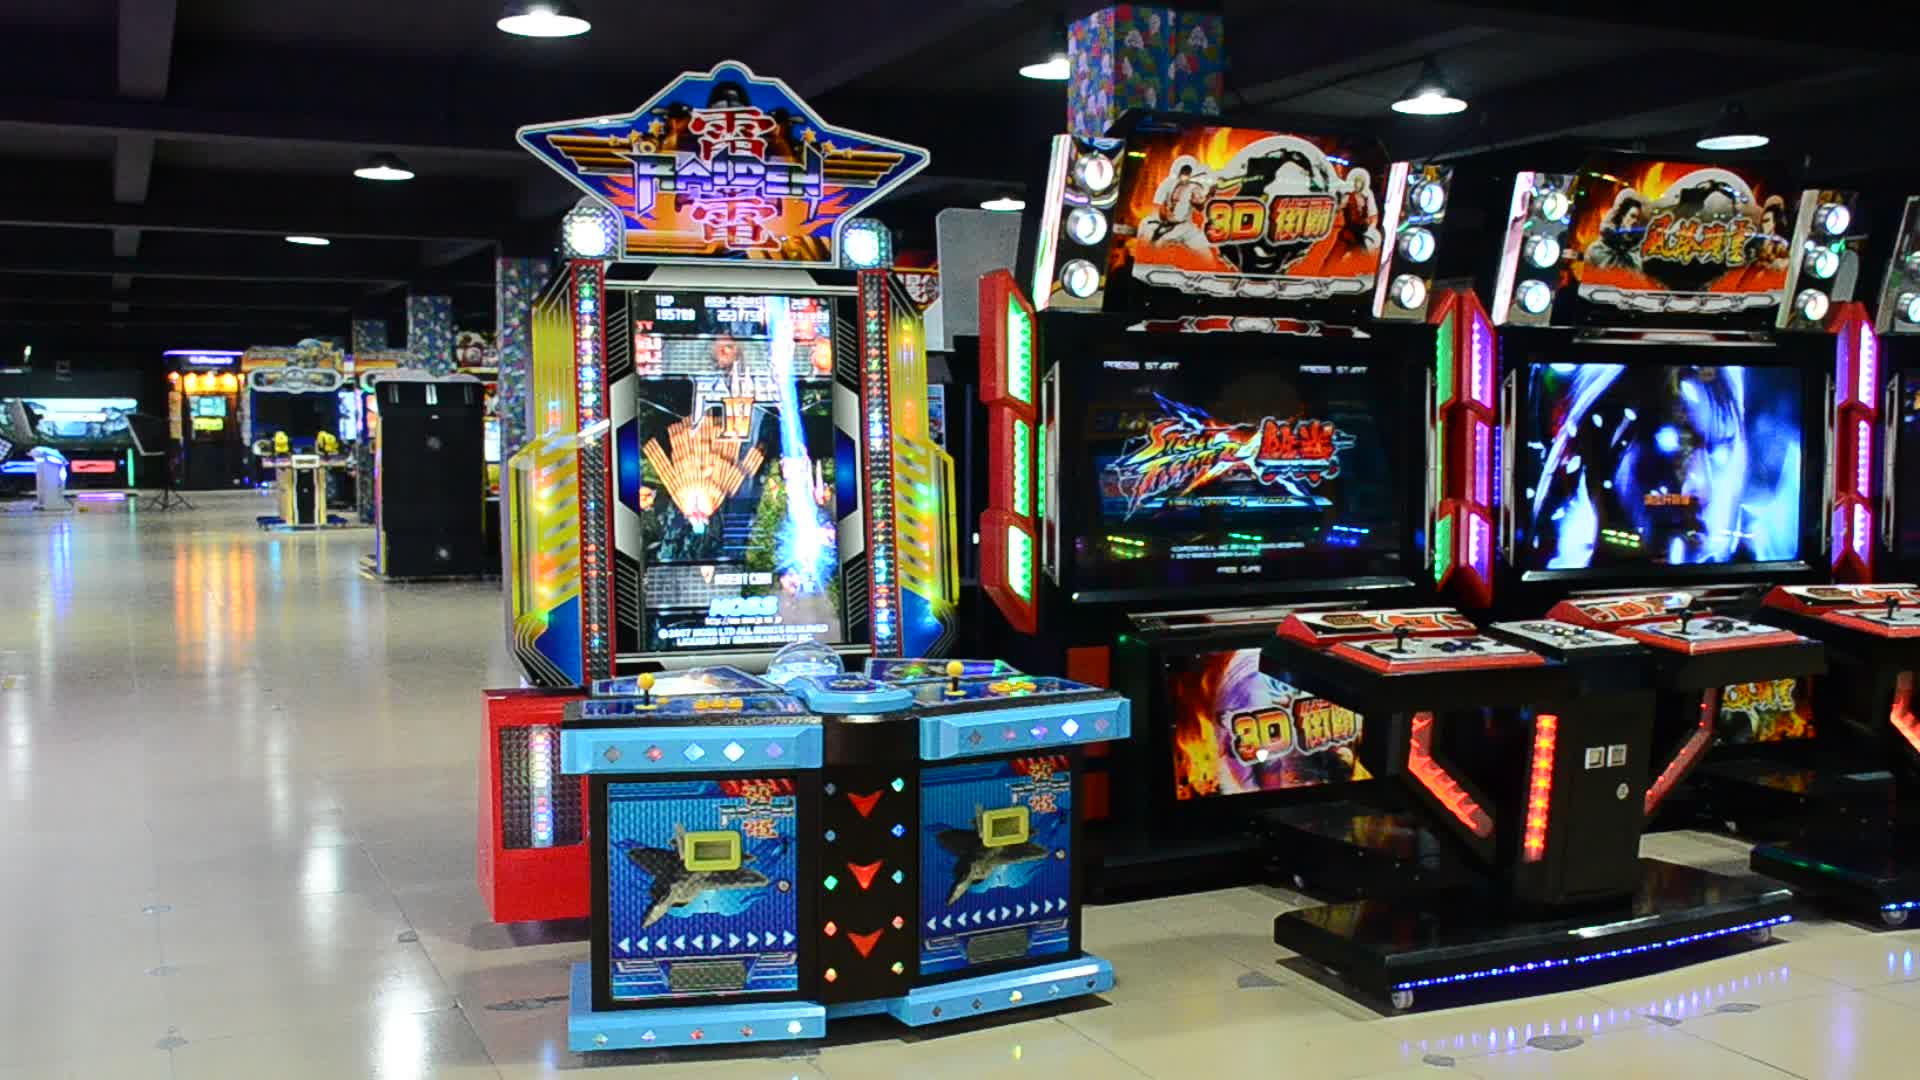 999 Games Yu Le Luxury Arcade Game Jamma Arcade Fighting Game Board Pandora Box 5s With 999 Games In 1 Buy Pandora Game Fighting Game Home Arcade Game Product